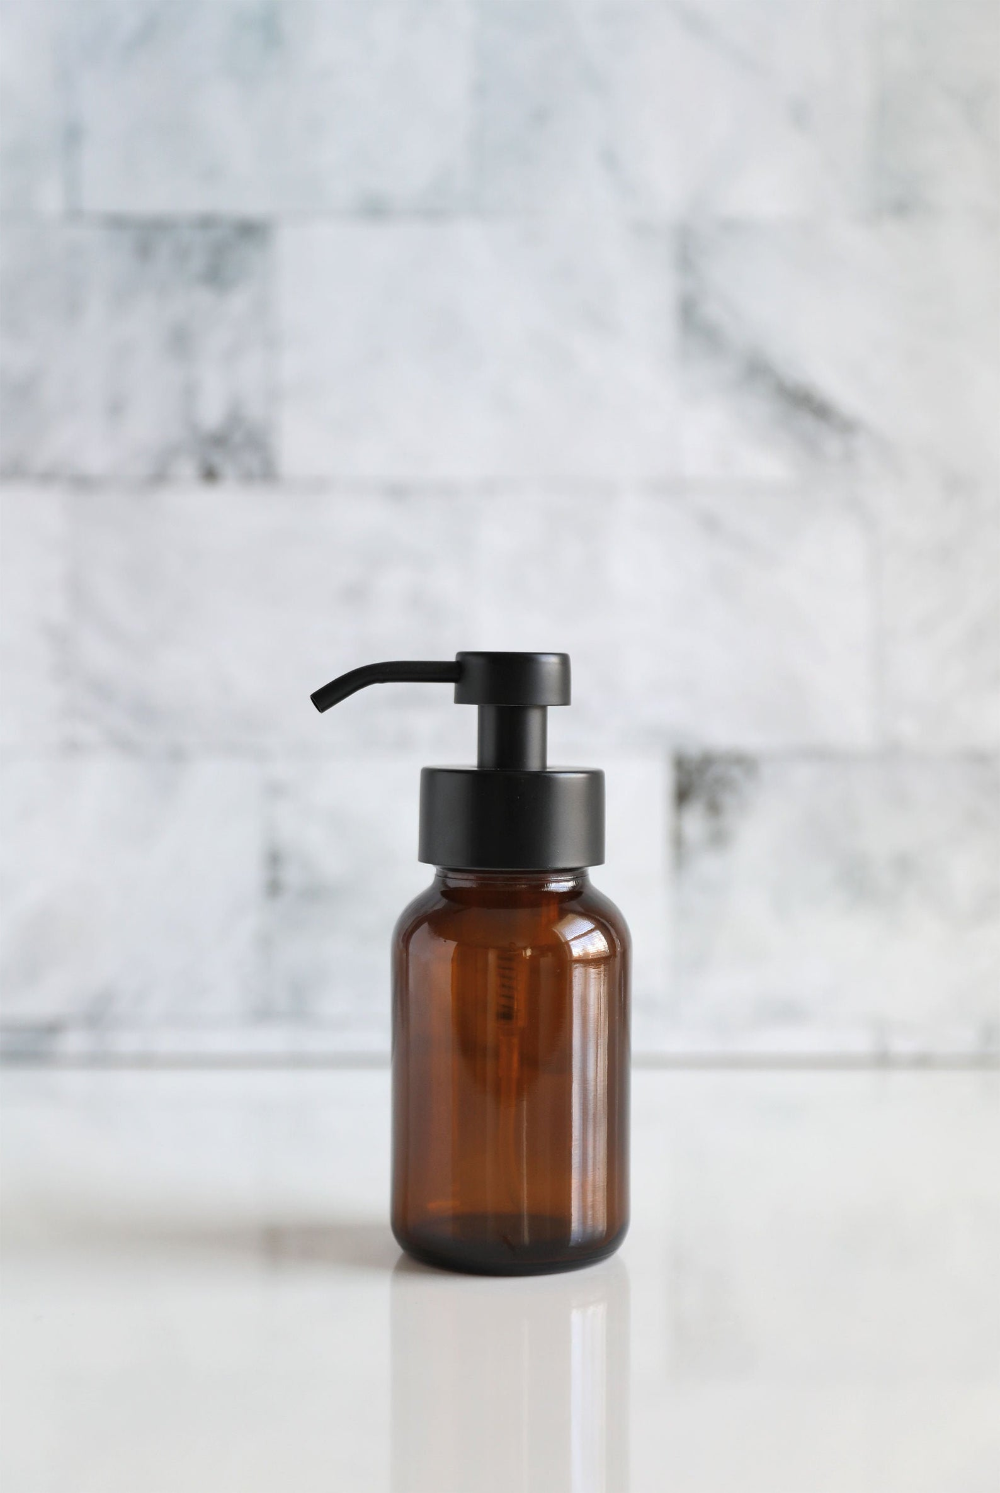 Apothecary Amber Glass Foaming Soap Dispenser With Black Metal Etsy In 2020 Foam Soap Glass Soap Dispenser Soap Dispenser